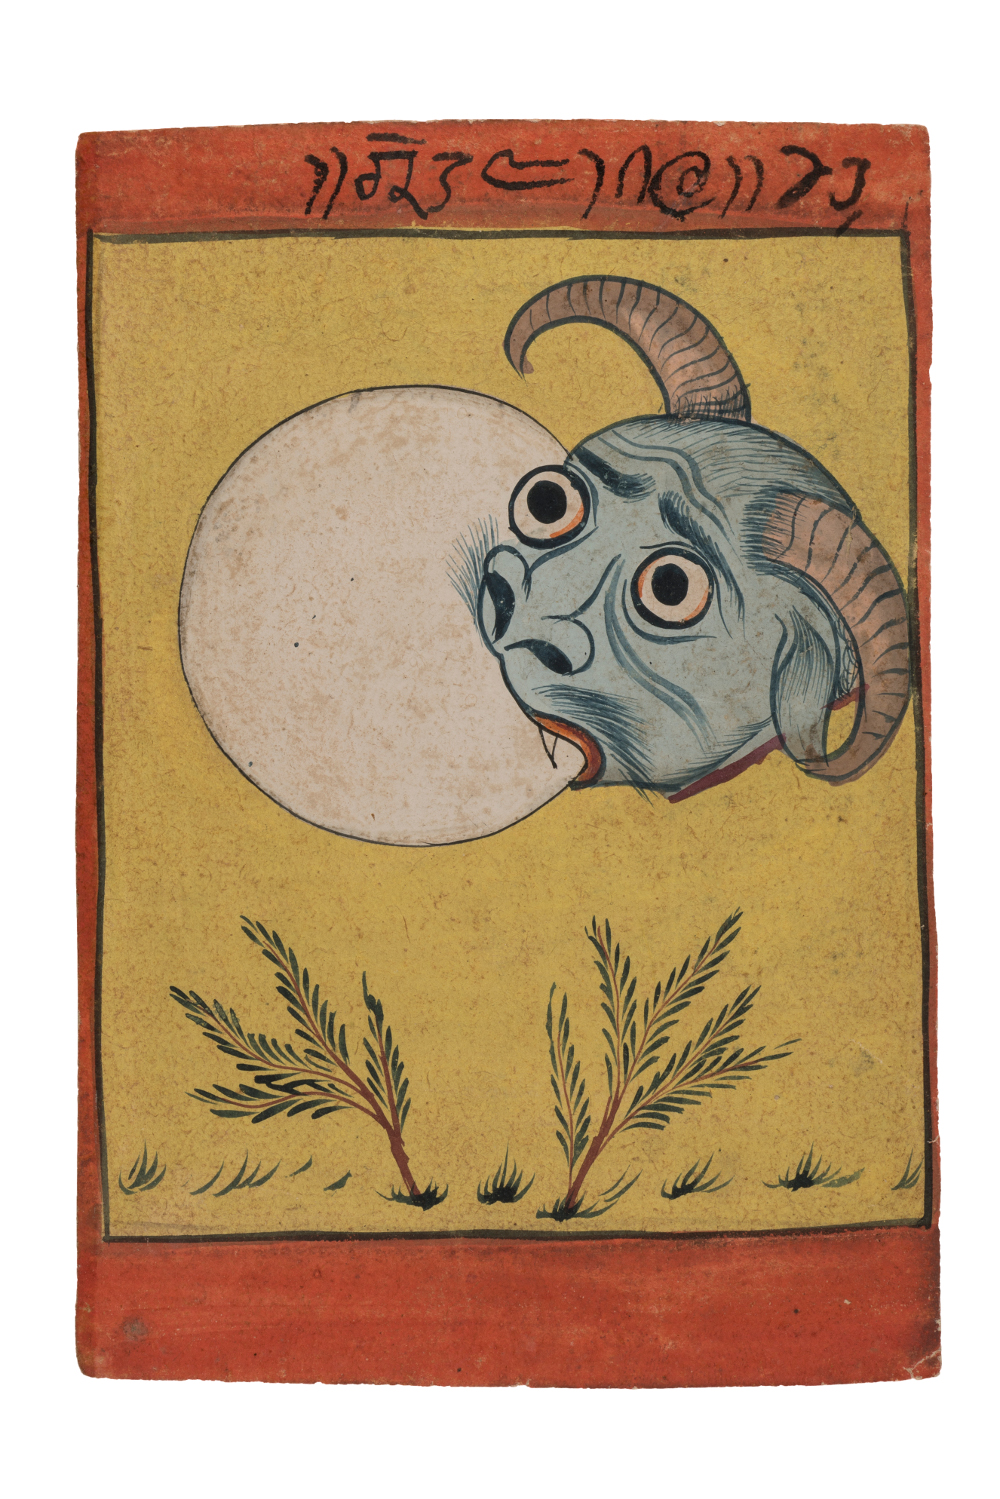 Rahu, the consumer of time - Gouache on paperPahari, AD1720–50Nurpur, Himachal Pradesh, IndiaGovernment Museum and Art Gallery, Chandigarh Museum (2153) In Indian mythology, Rahu is personified as the wrathful devourer of time, the eclipse causing demon of darkness. He is one of the nine major celestial forces in Indian astrology and represents the northern node of the moon. Time between sunrise and sunset is segmented into eight phases and one of them is called Rahukaal. This period, which occurs at different times every day, is a time when Rahu's influence is heightened, things go unexpectedly and time itself becomes unbound.